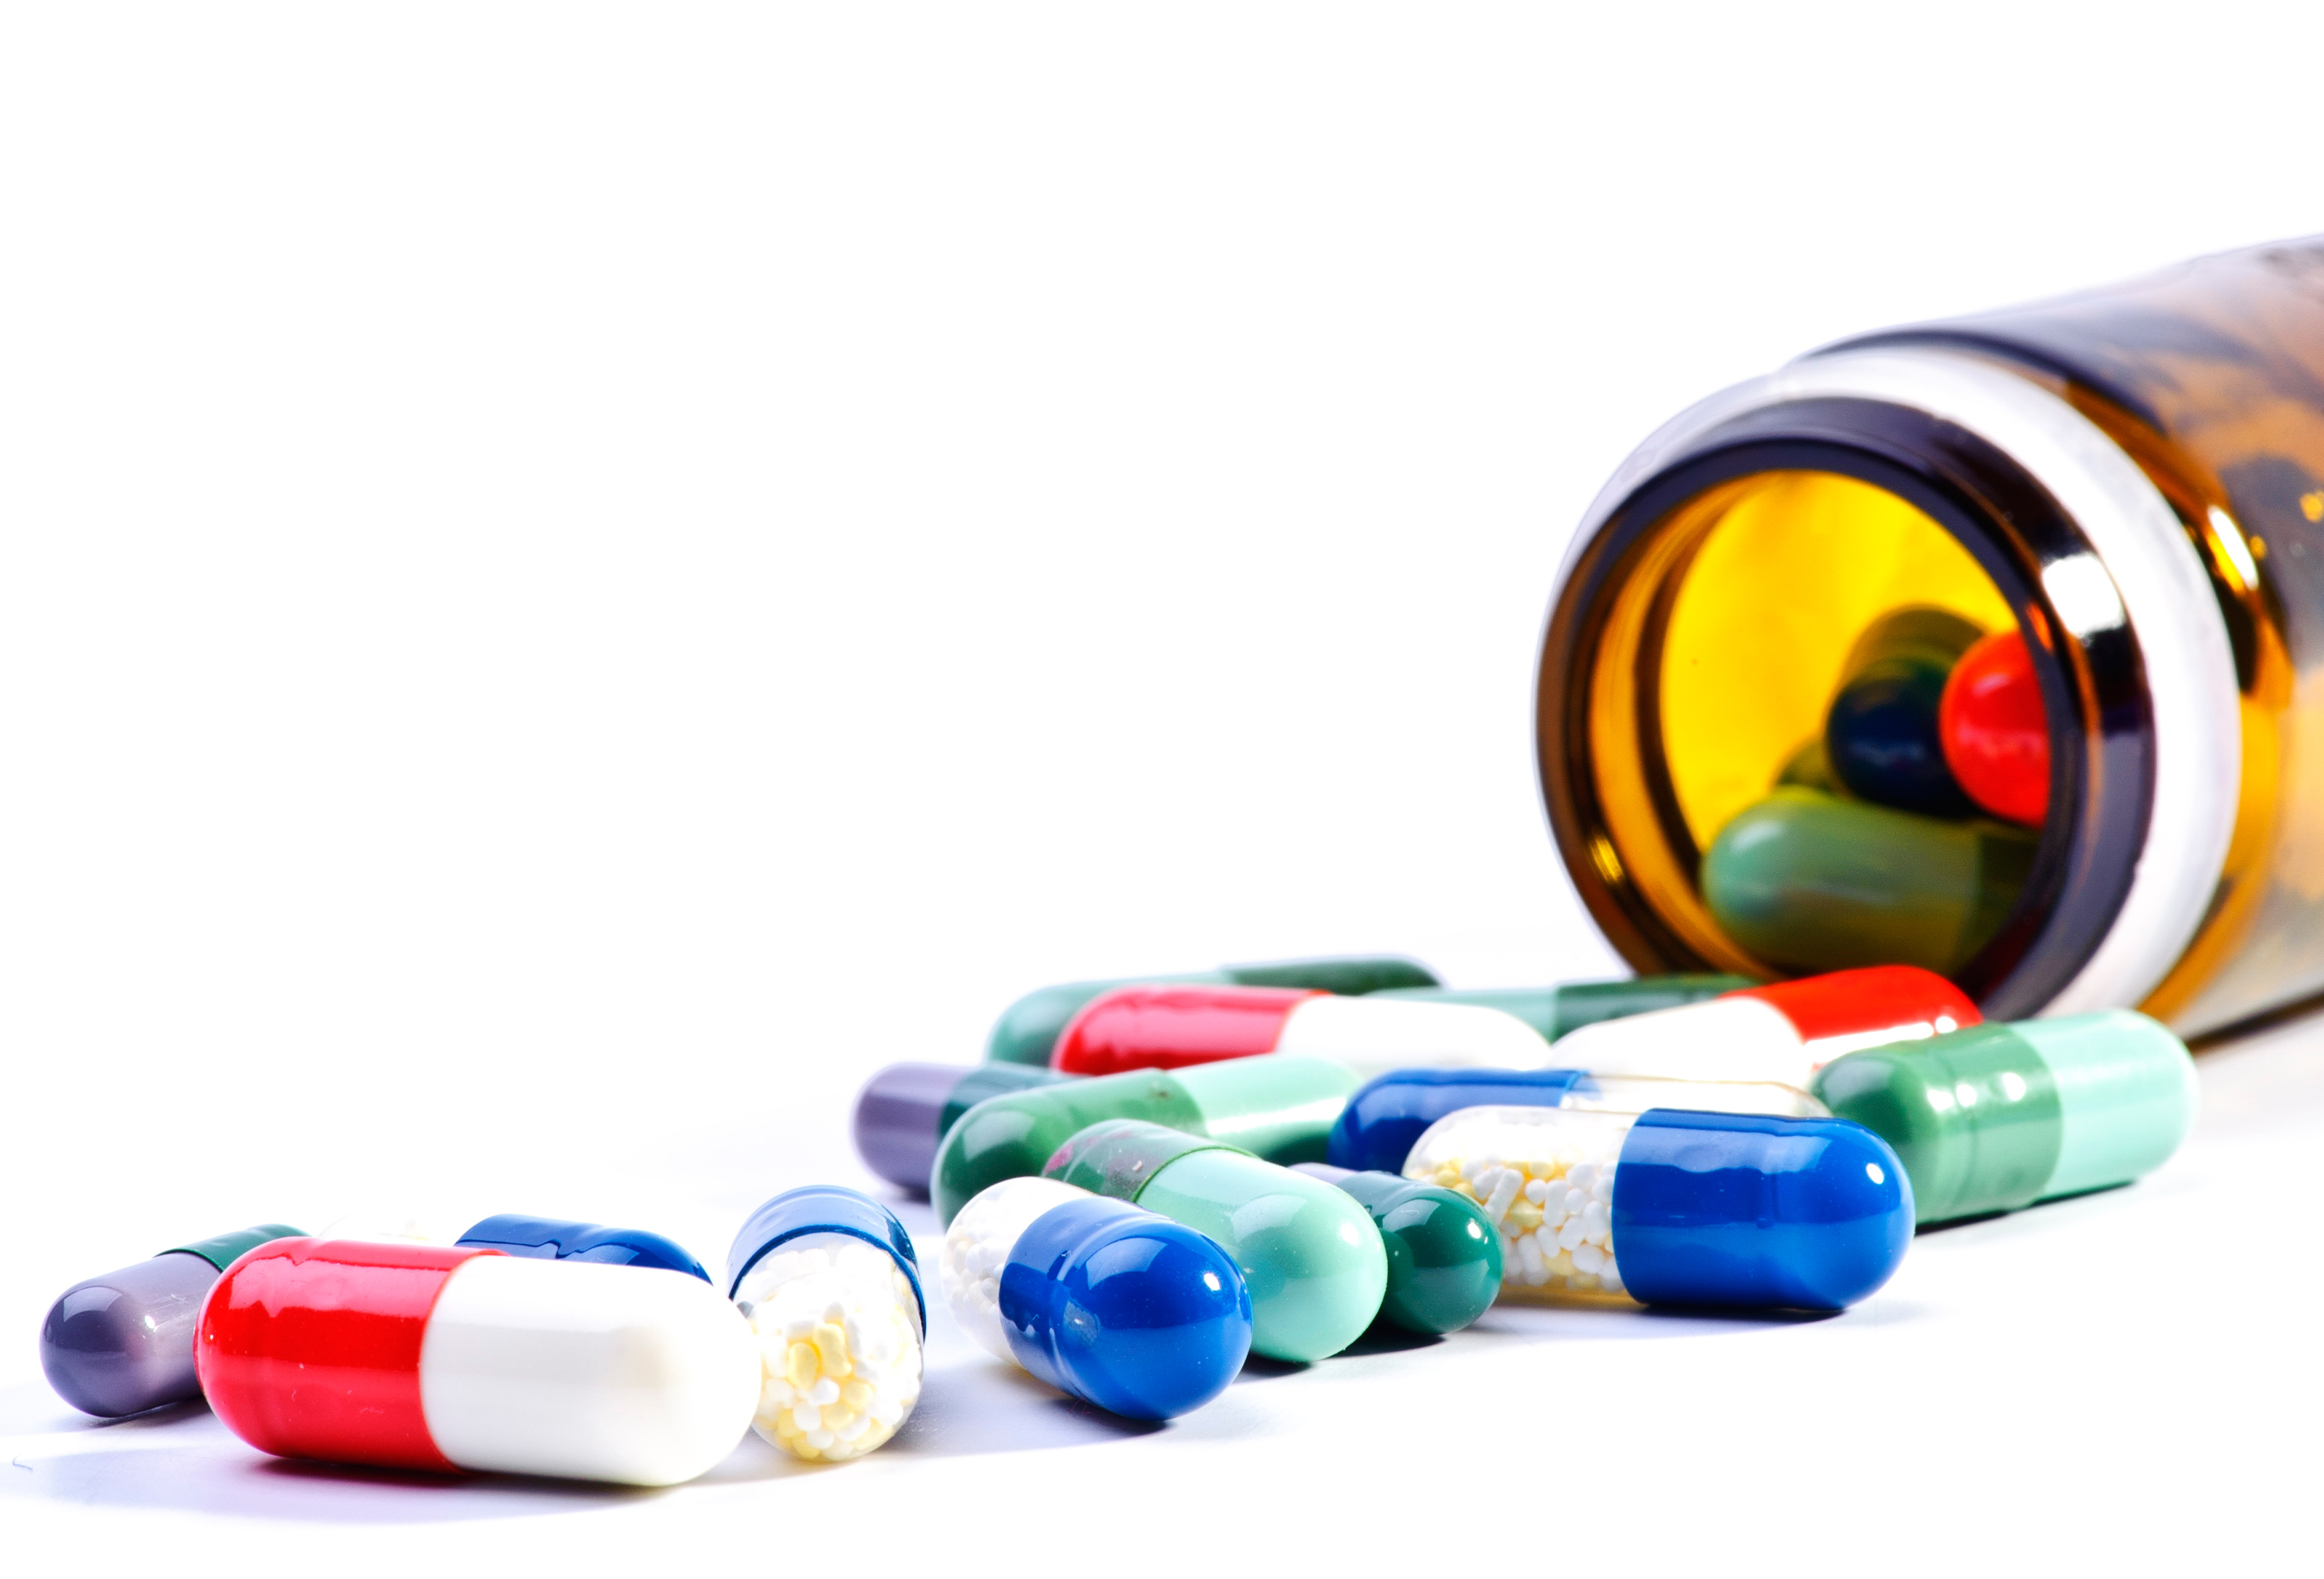 To Save On Drug Costs, Insurer Wants To Steer You To 'Preferred' Pharmacies